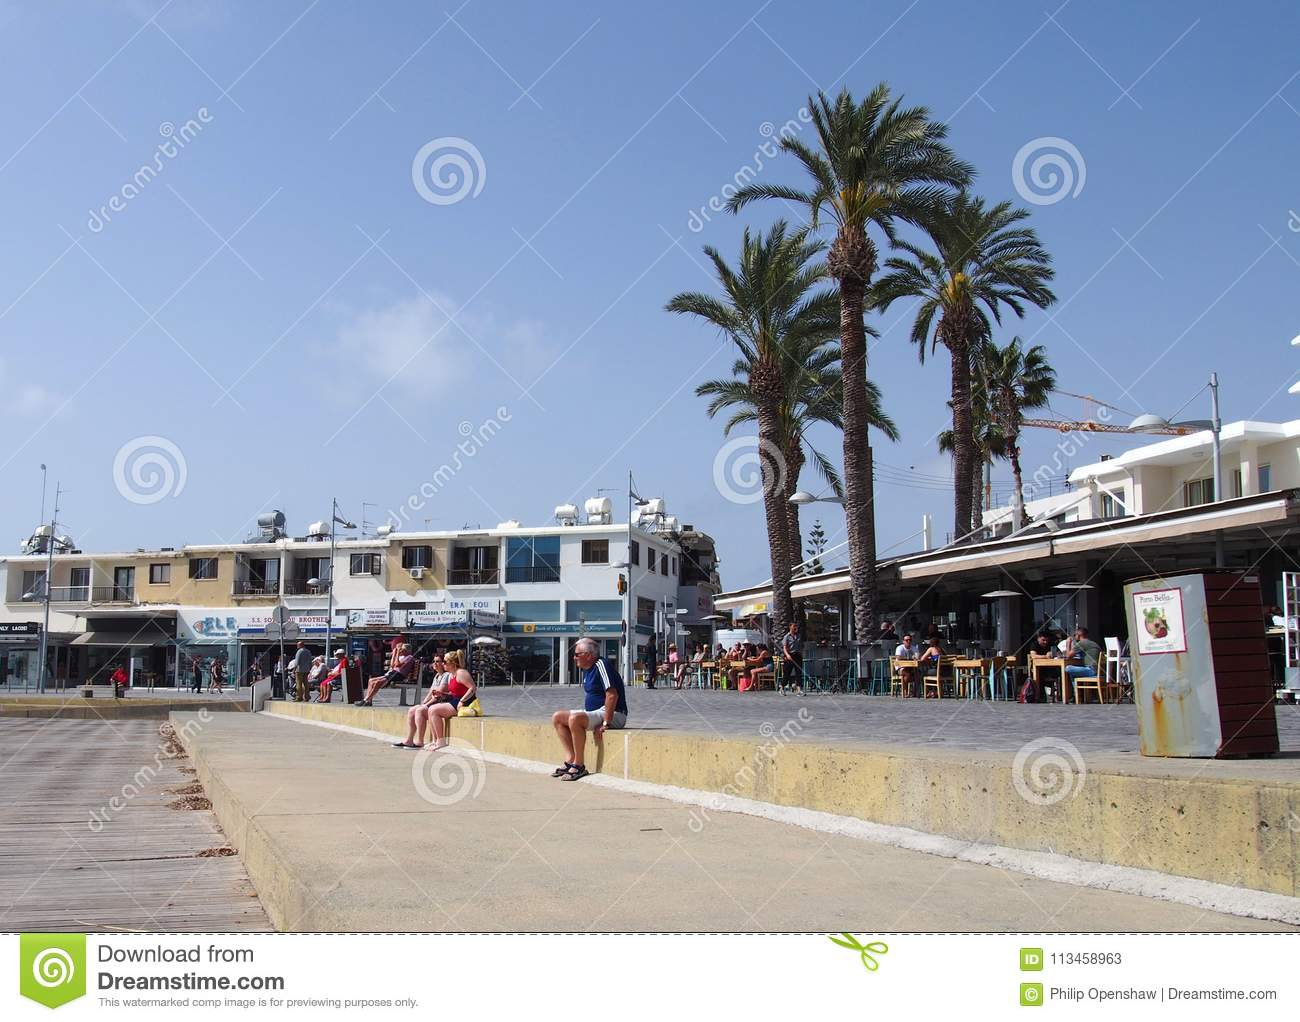 Tourists Sat On The Wall Of The Promenade In The Town Of